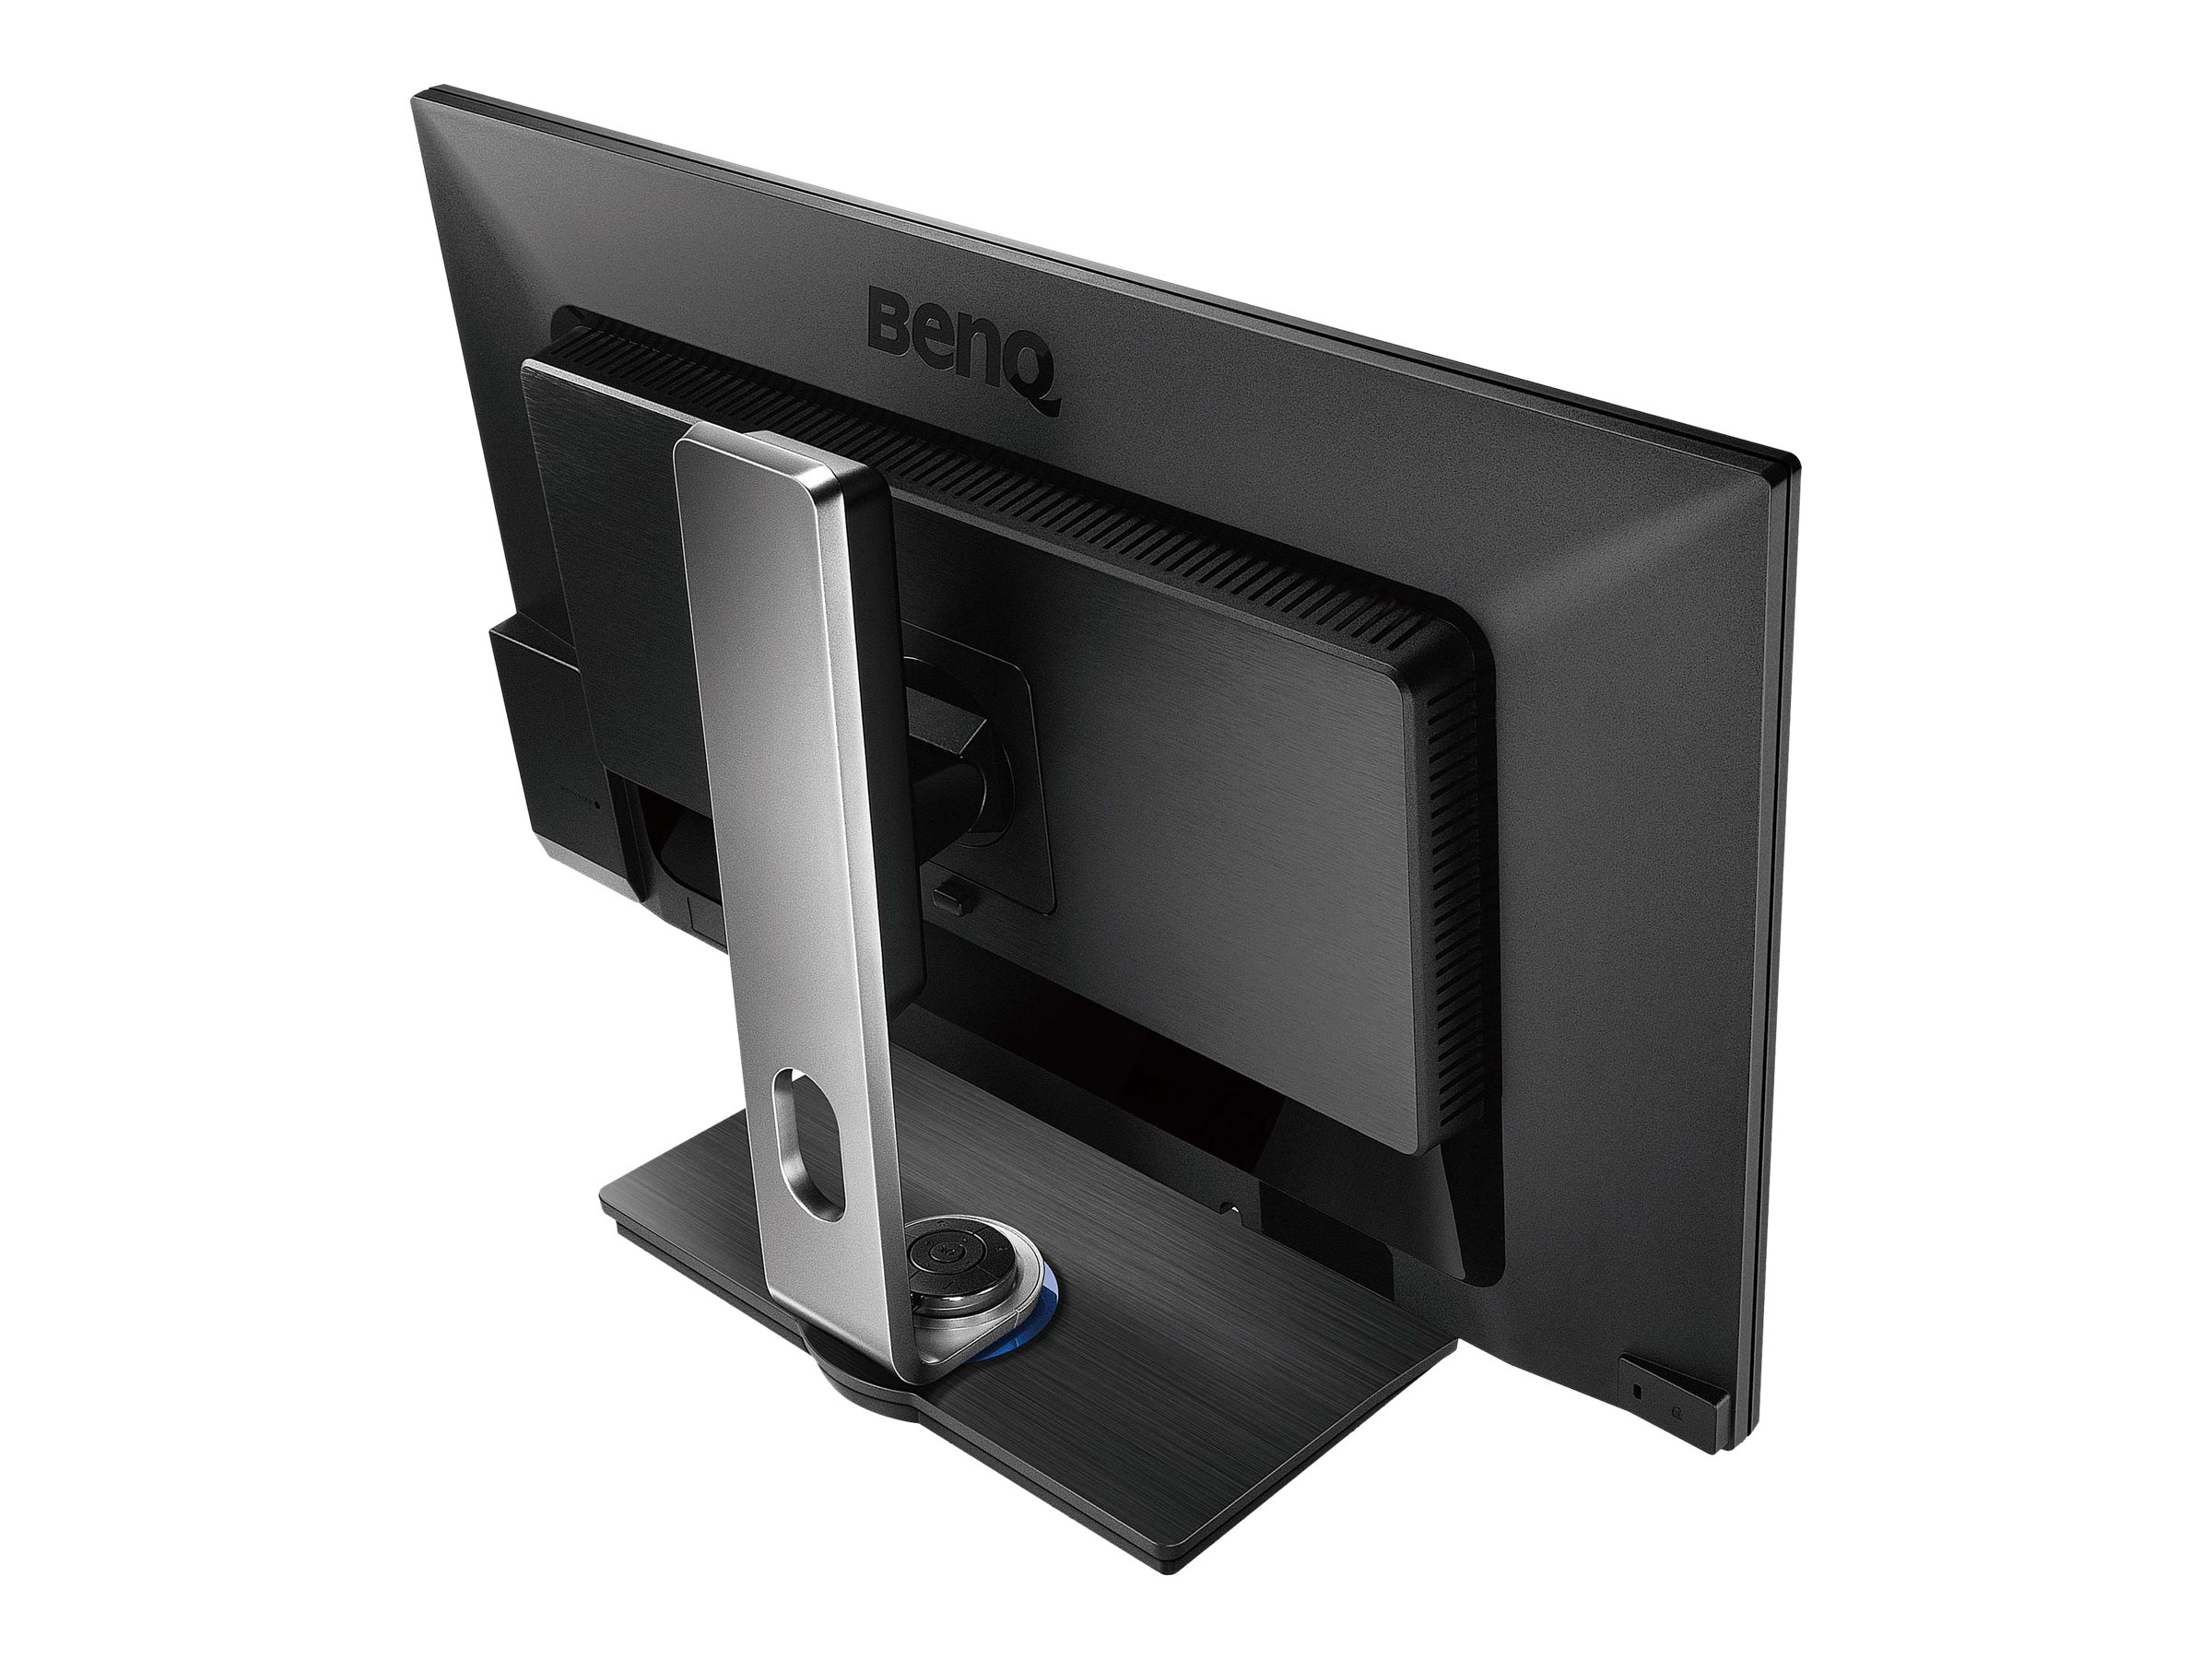 Benq 32 PV3200PT 4K Ultra HD LED-LCD Monitor, Black, PV3200PT